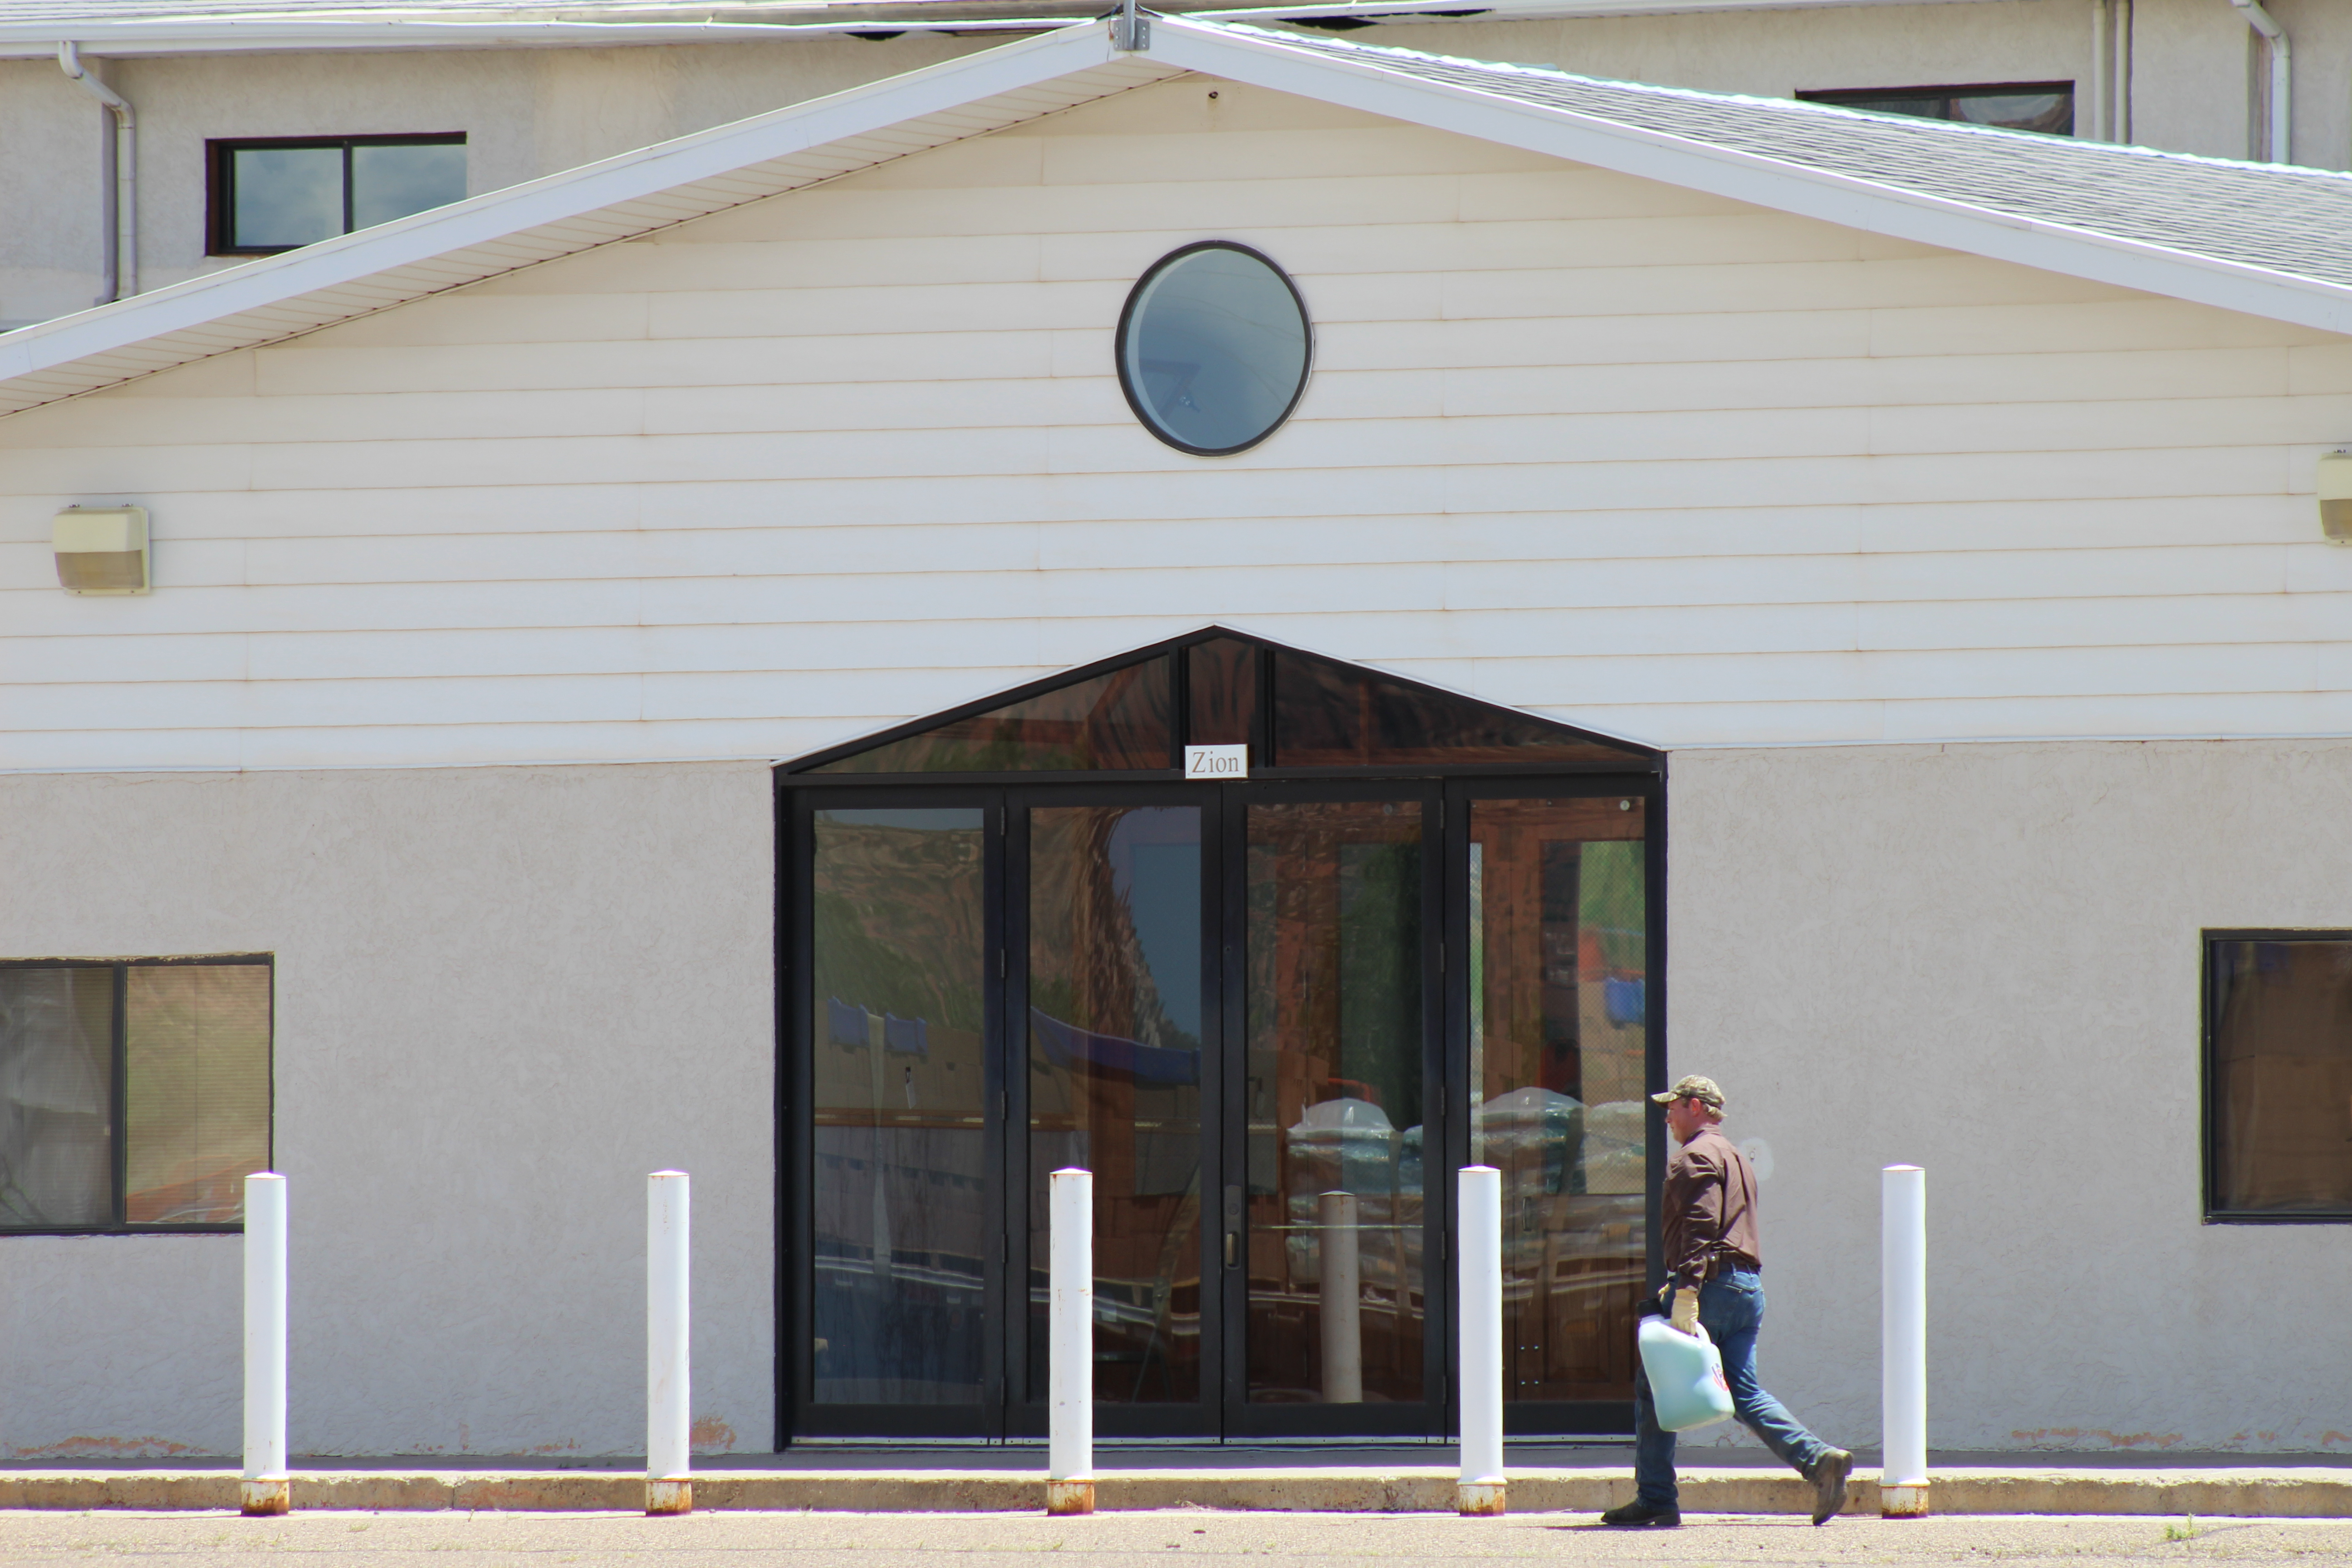 The Zion plaque rests over the front entrance of the Leroy S. Johnson Meeting House, Colorado City, Arizona, July 2, 2015   Photo by Nataly Burdick, St. George News